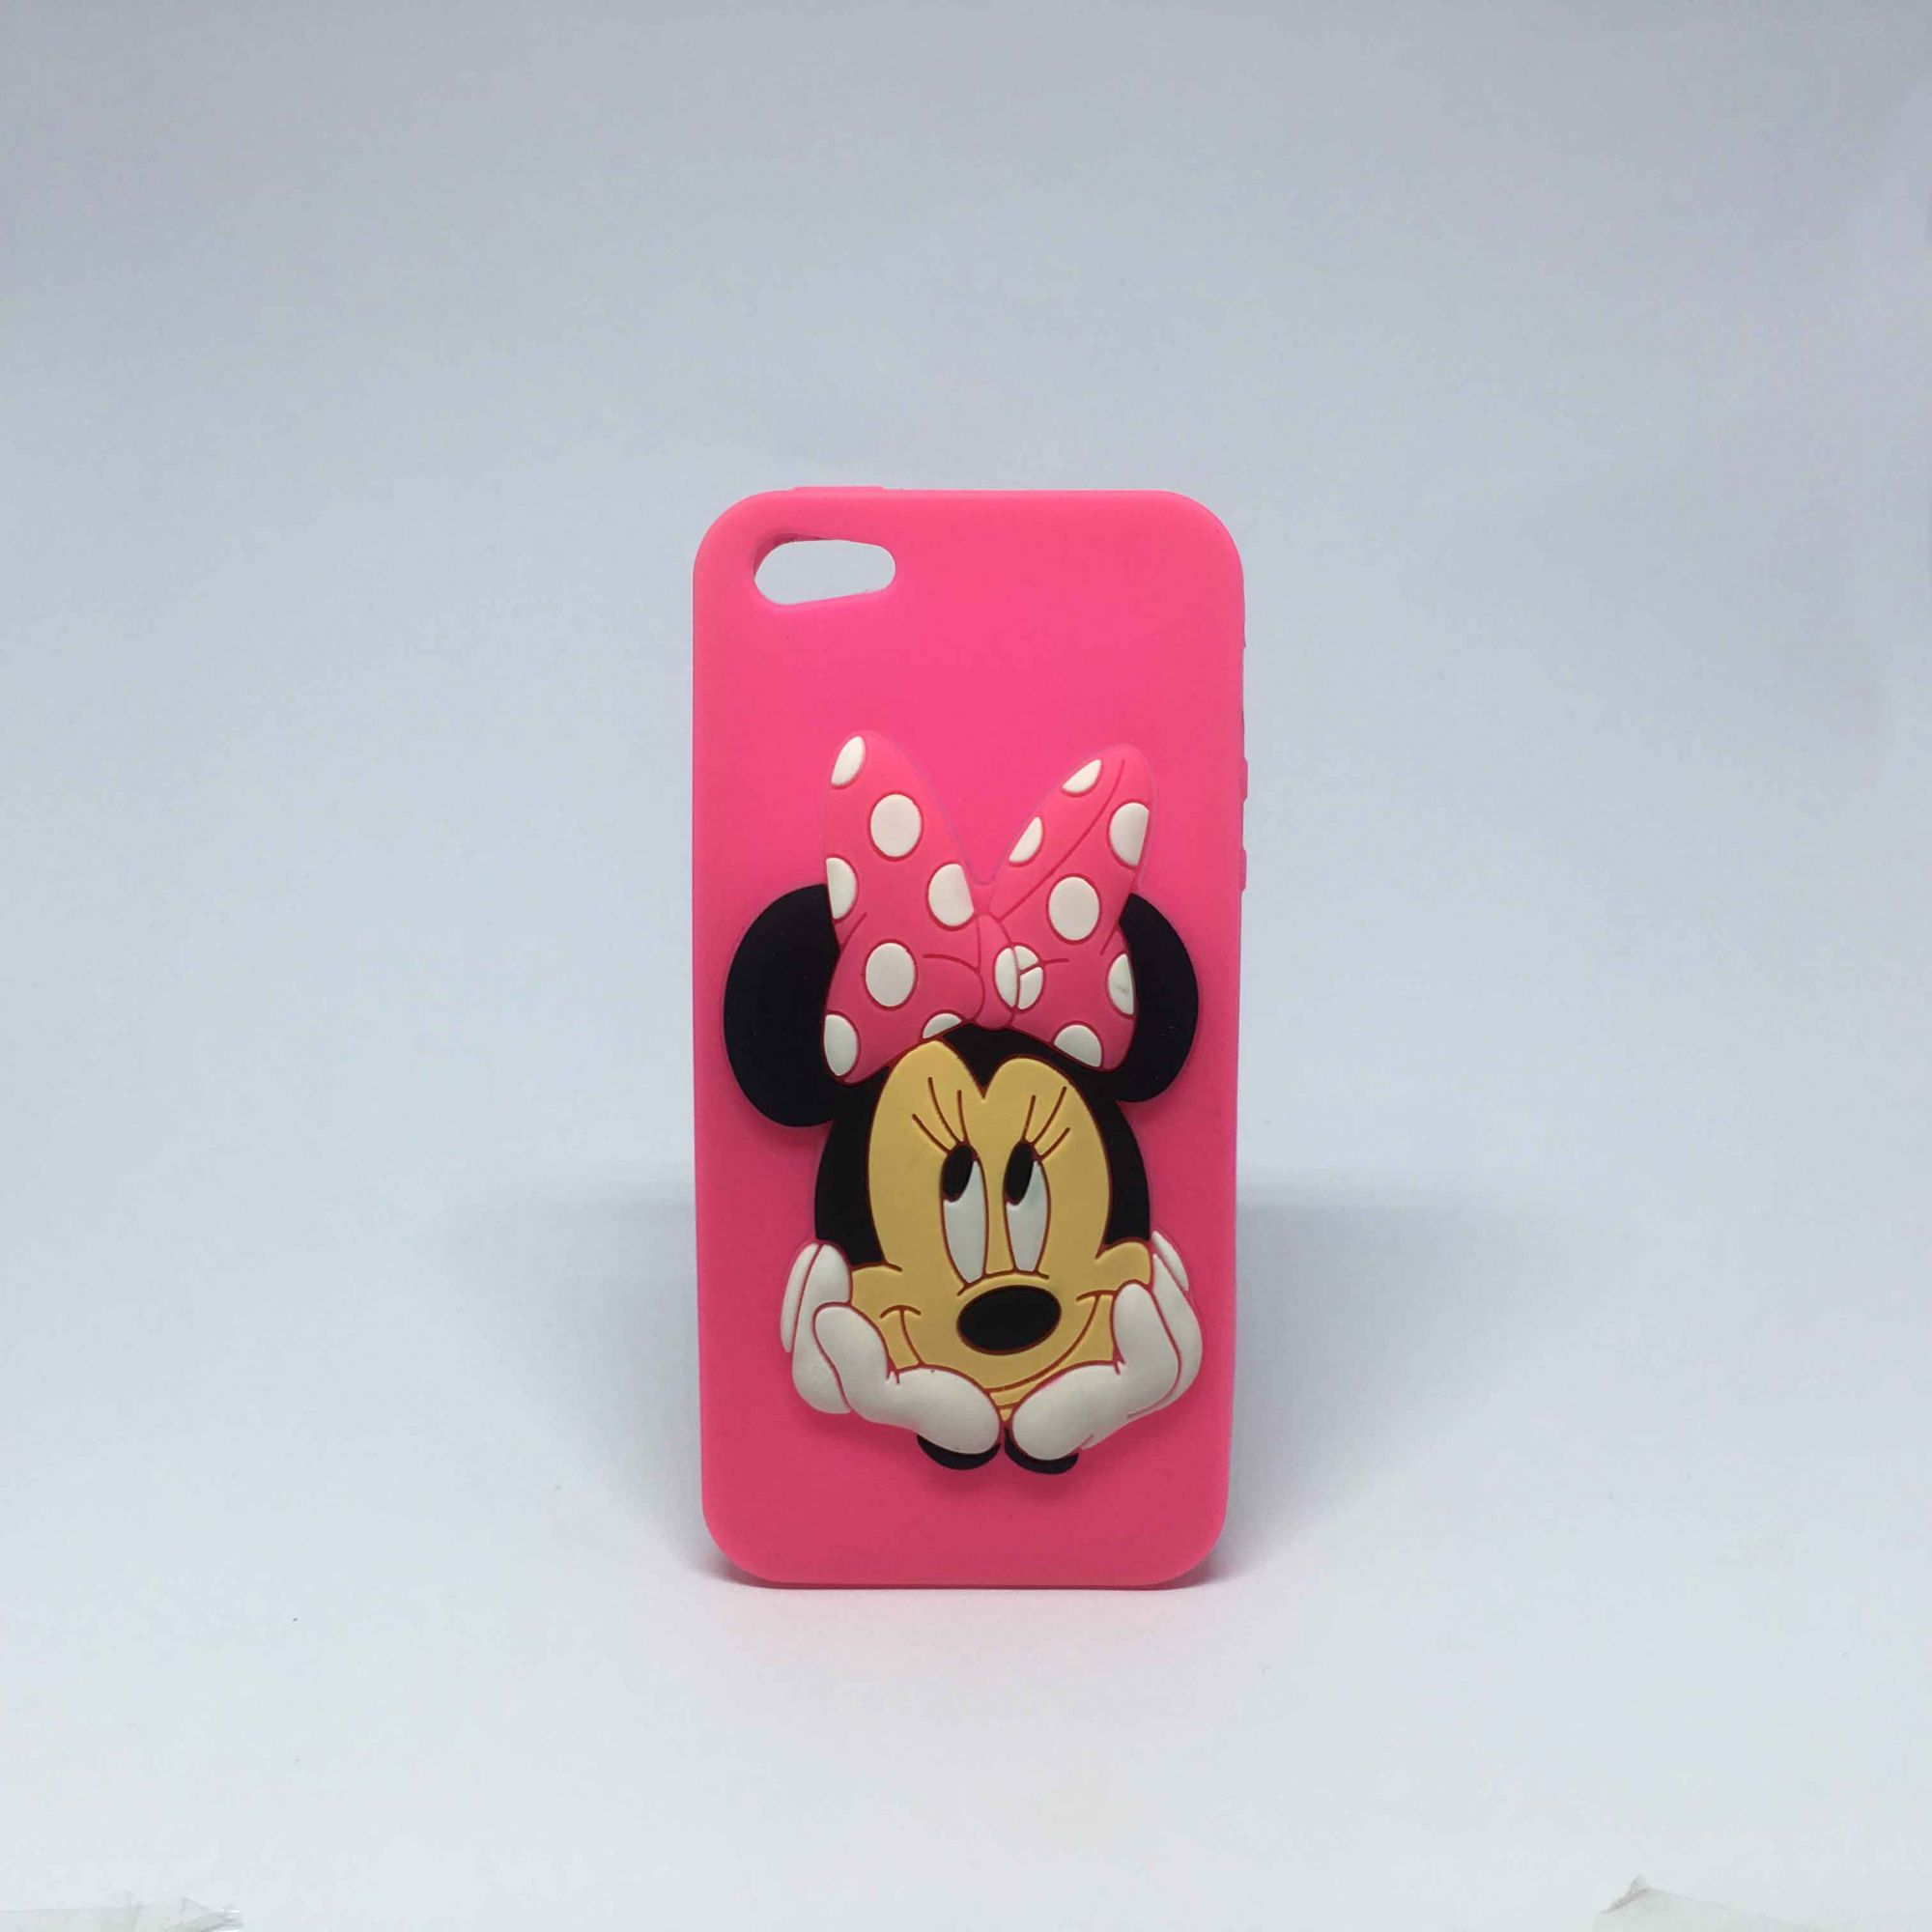 Capa Iphone 5s/SE Personagens - Minnie